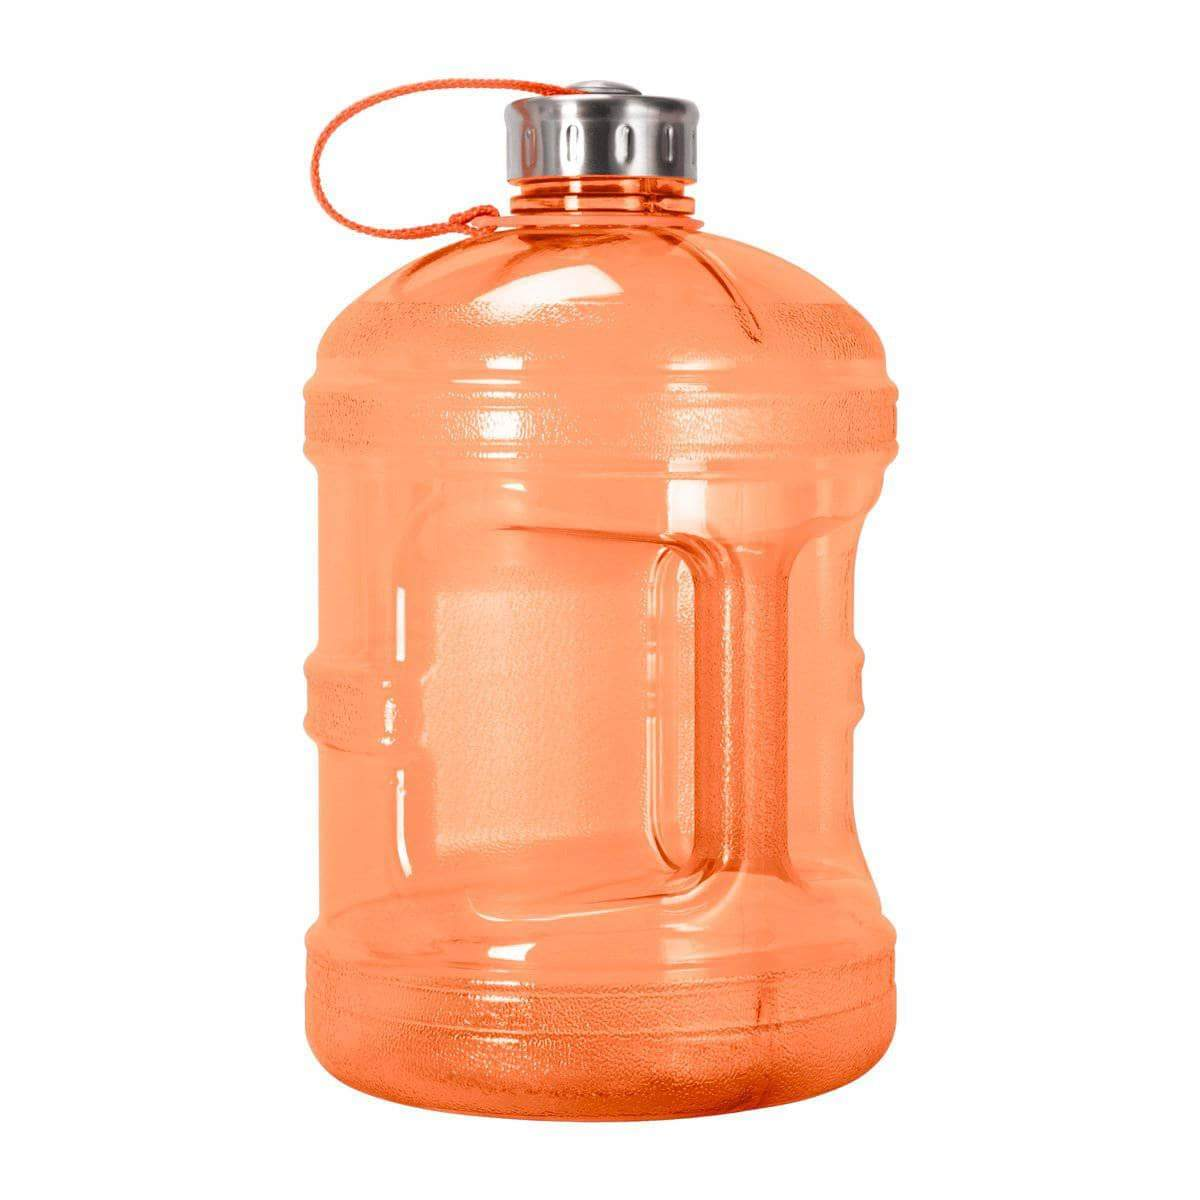 GEO Bottles Orange 1 Gallon BPA FREE Bottle w/ Stainless Steel Cap